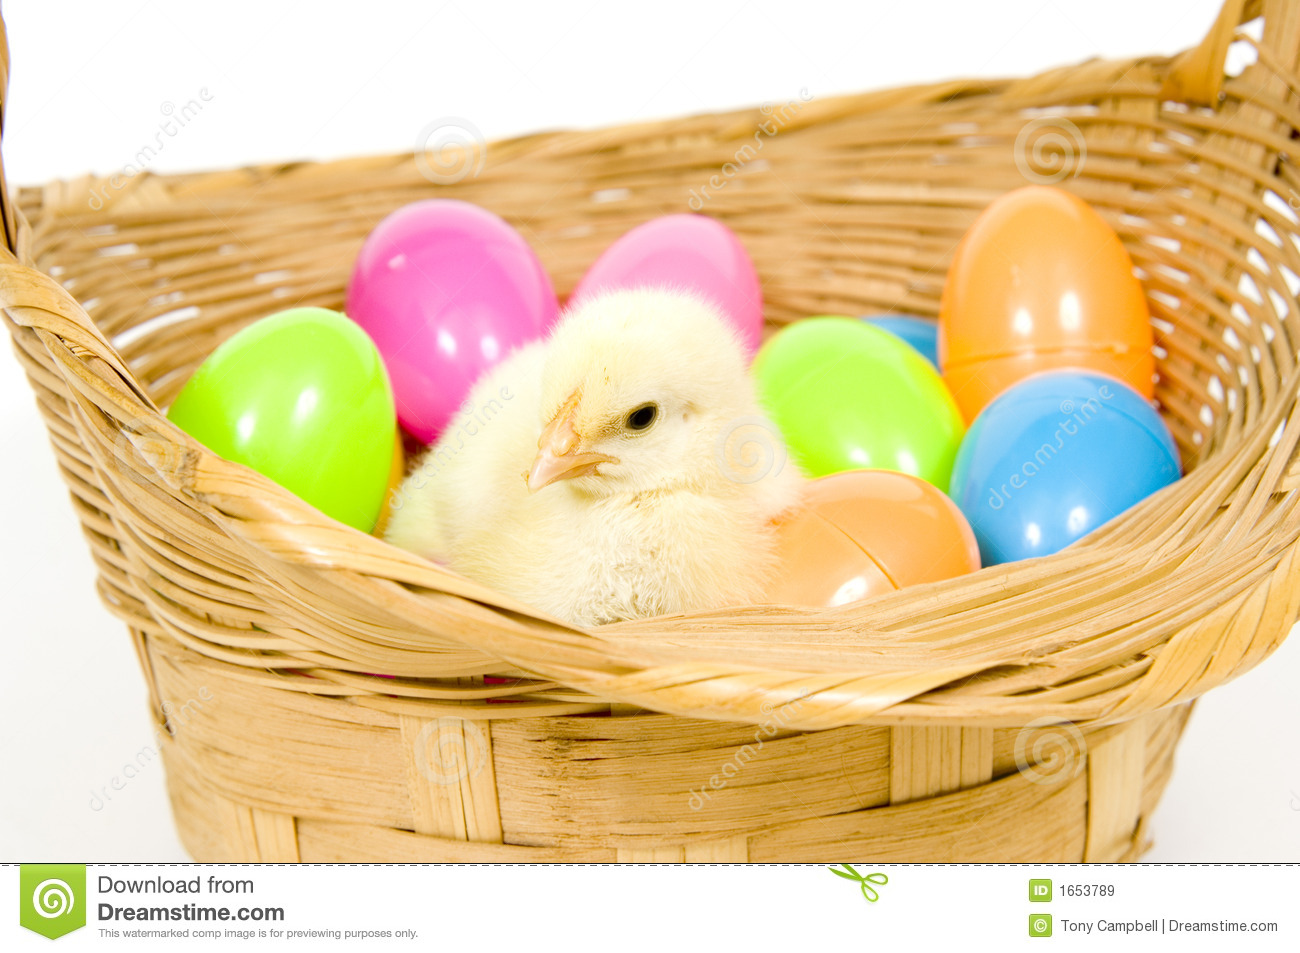 Baby Chick In A Basket With Plastic Easter Eggs